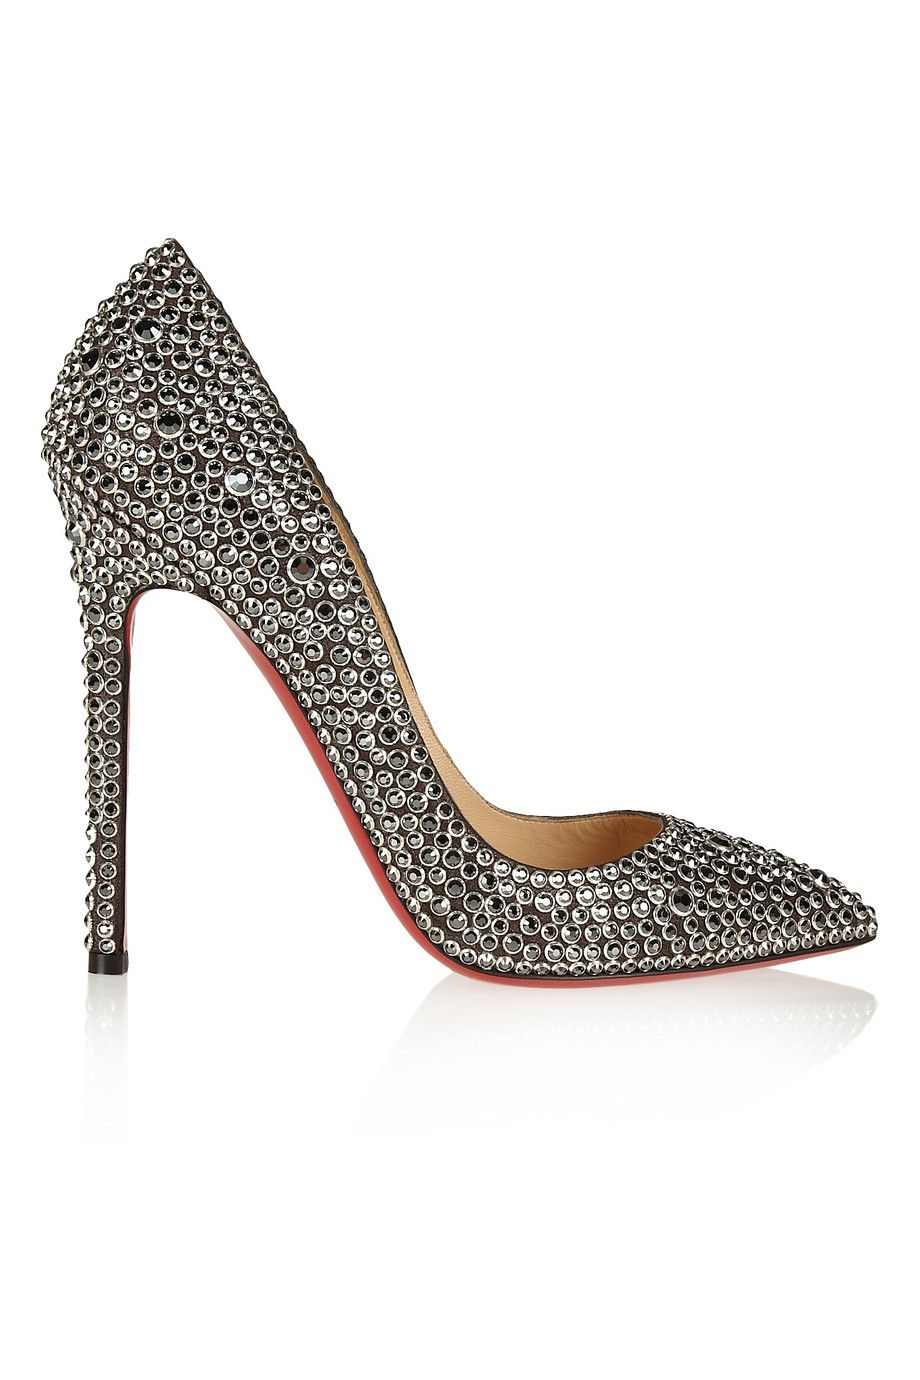 93d9ff4e198d CHRISTIAN LOUBOUTIN Pigalle 120 Crystal-Embellished Suede Pumps.   christianlouboutin  shoes  pumps